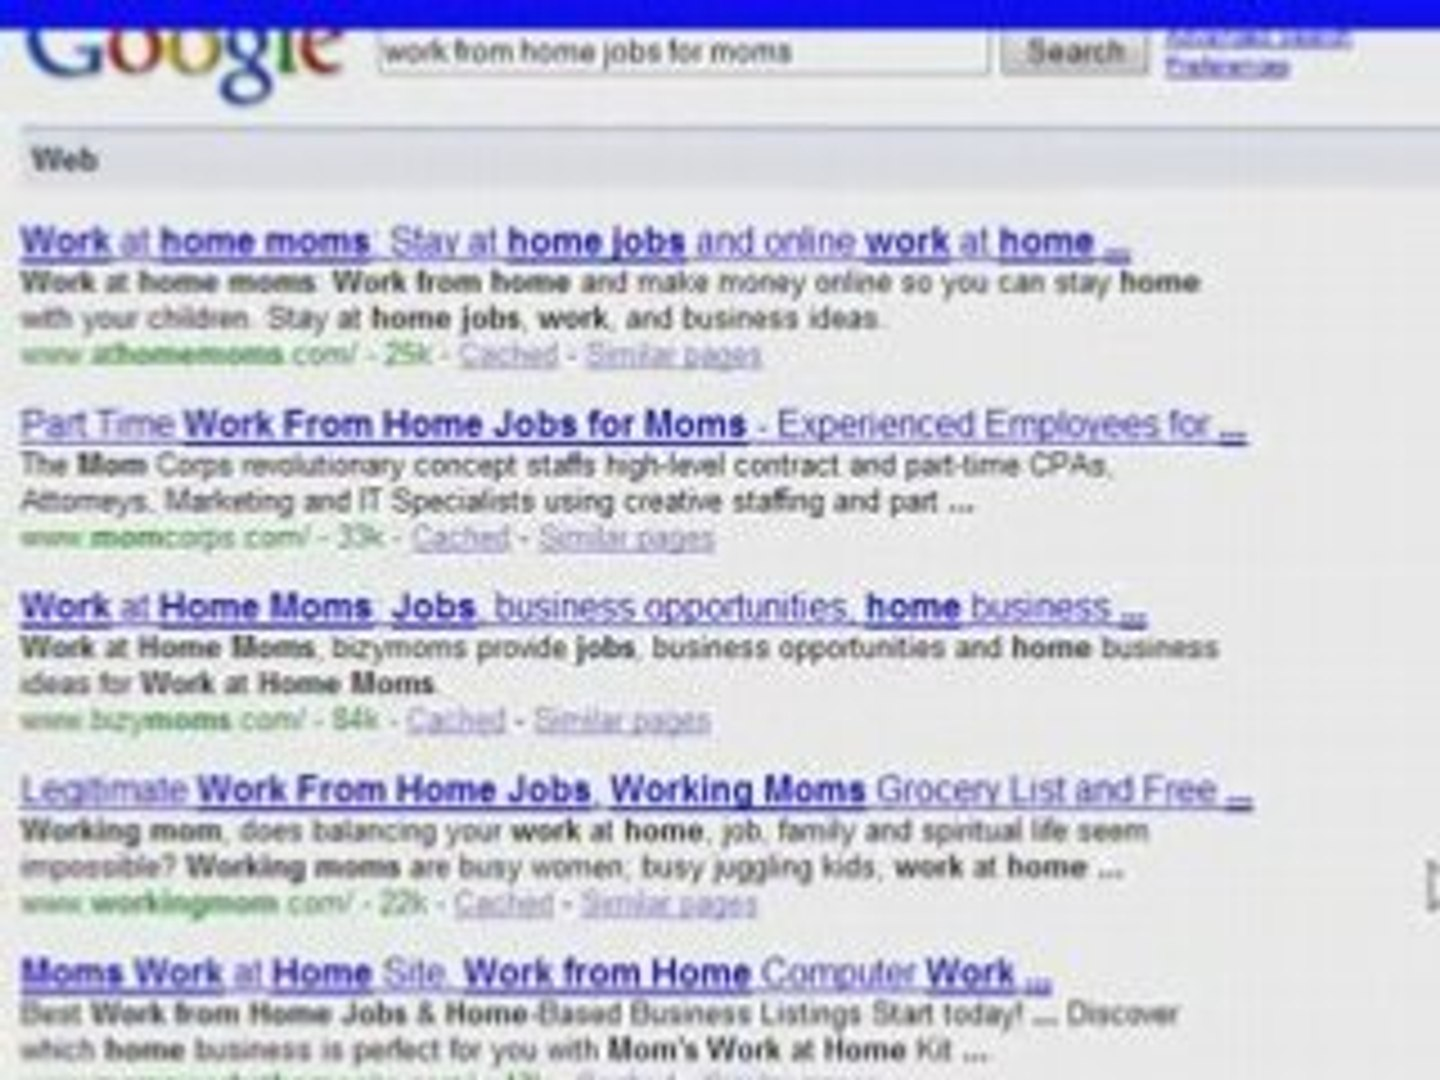 Work From Home Jobs For Moms *Part One* - video dailymotion